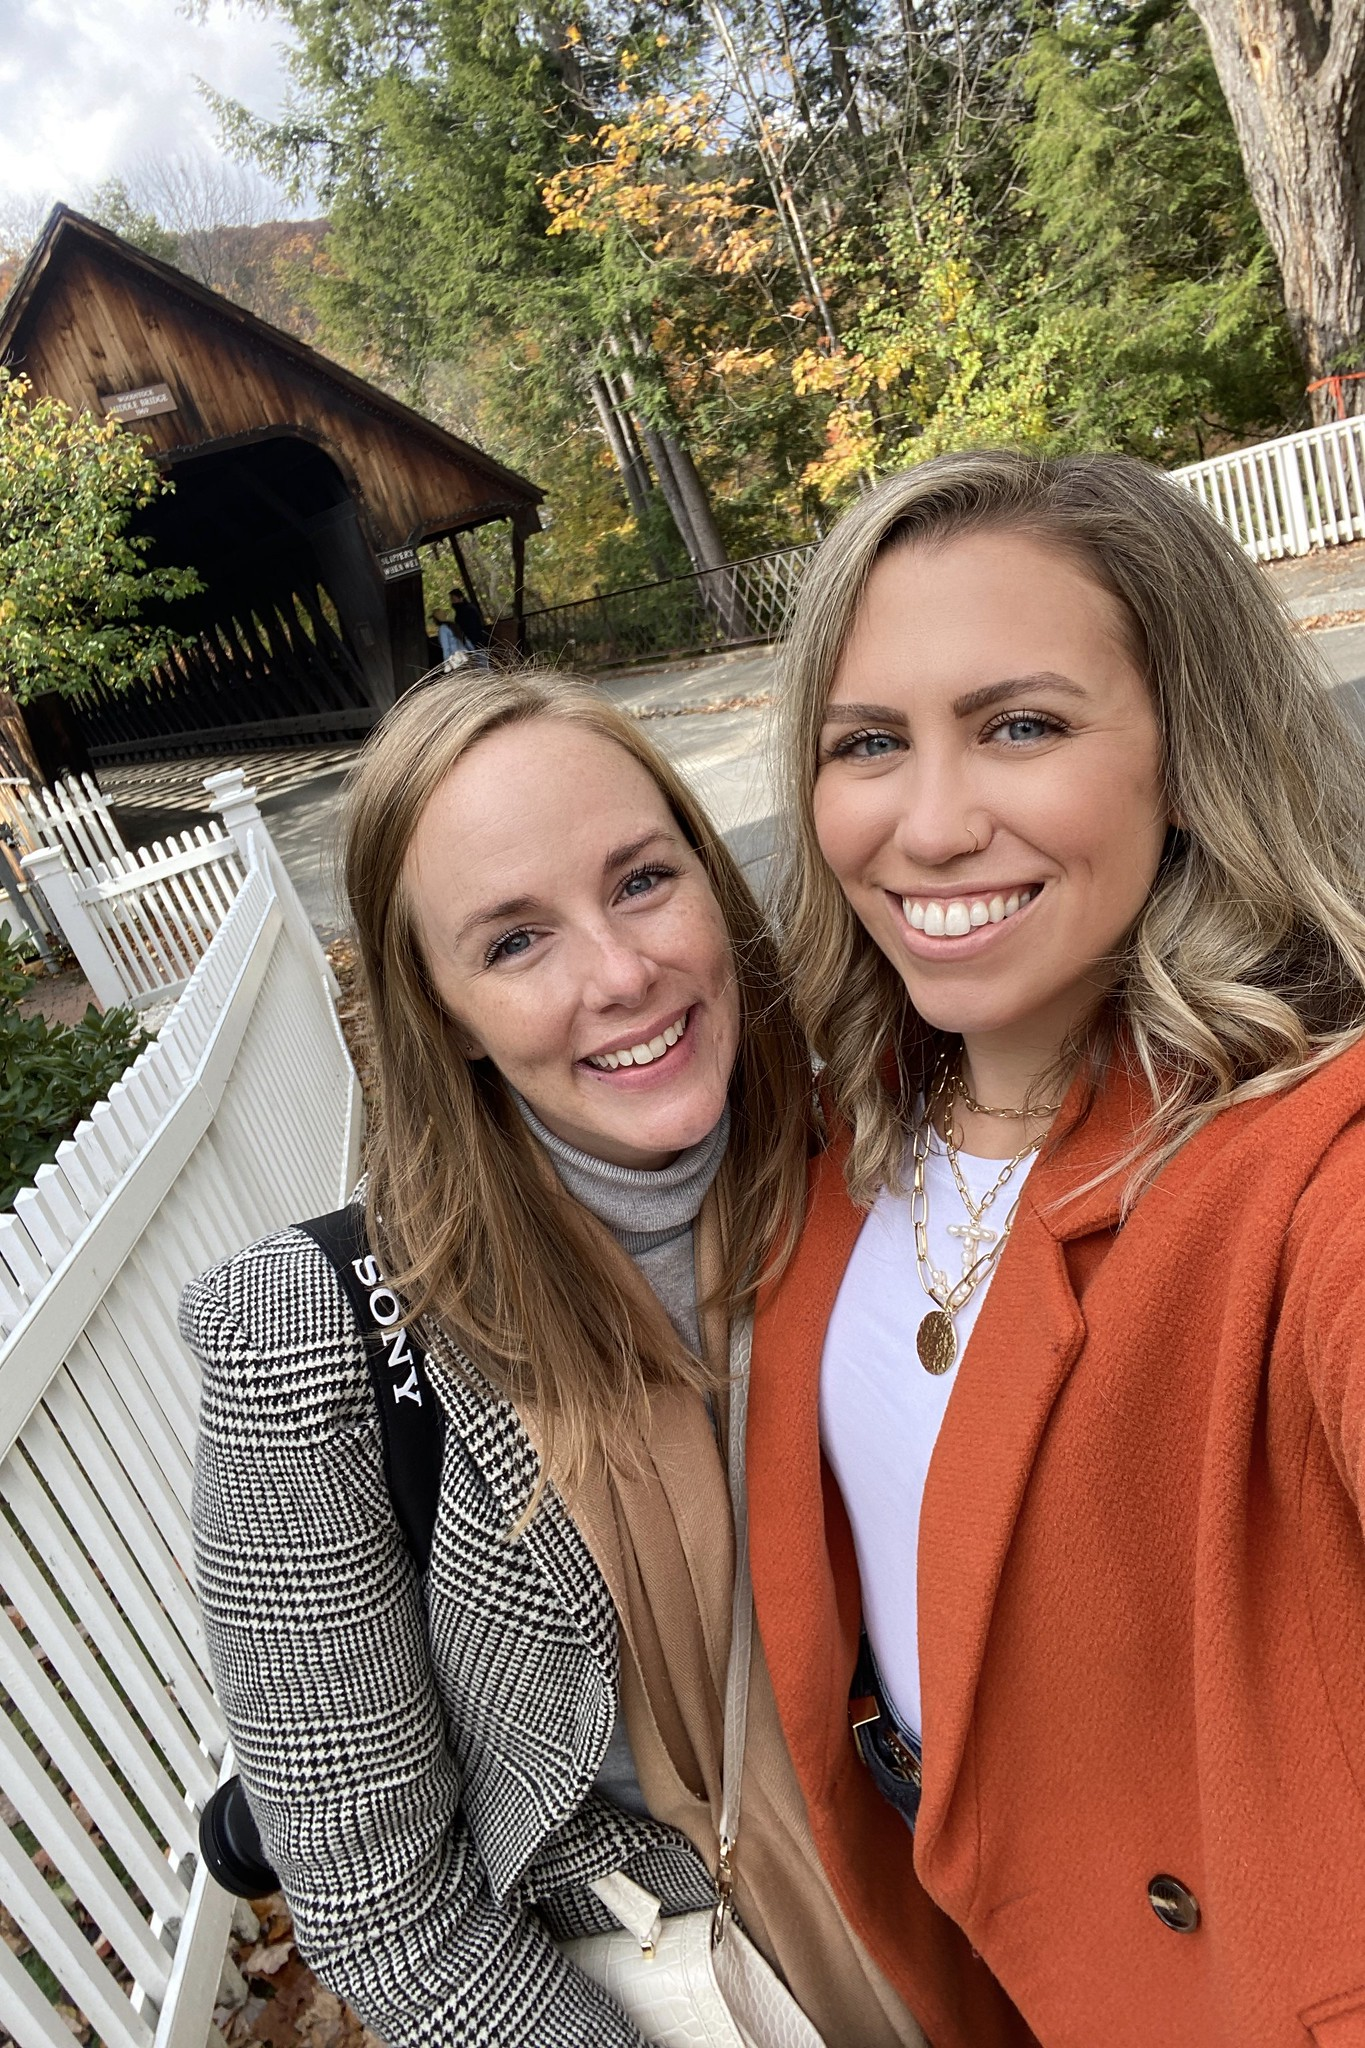 Selfie in front of the Middle Covered Bridge | Woodstock VT | My Complete Vermont Fall Travel Guide: What to See, Do & Eat | Ultimate Fall Guide to Vermont | 5 Day Vermont Road Trip | Fall Foliage Road Trip Guide